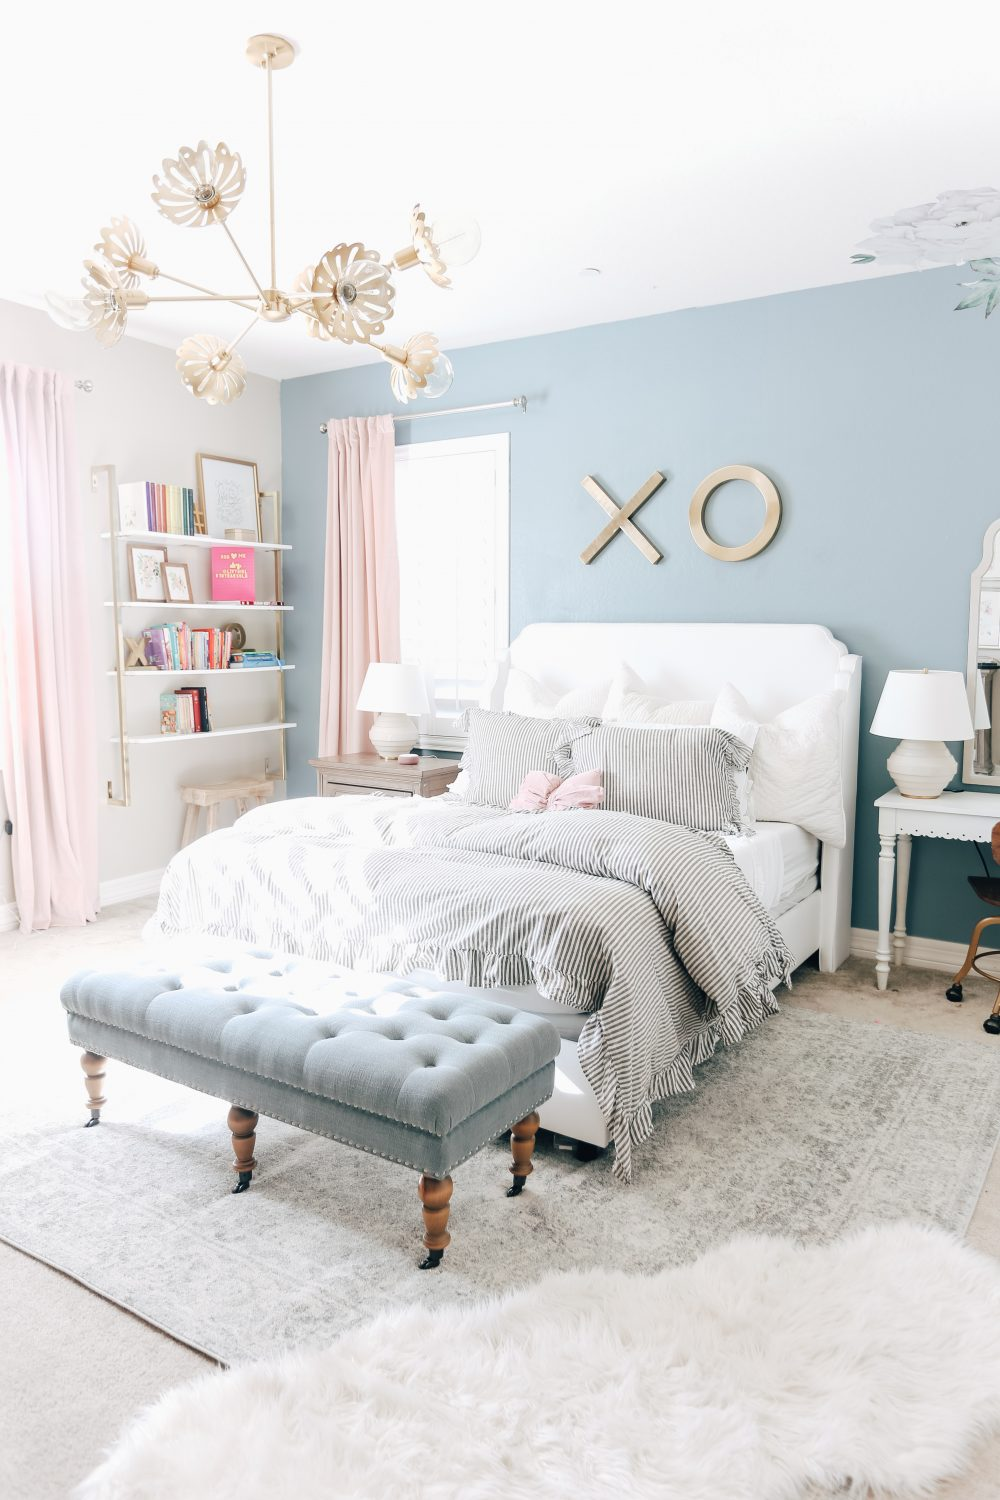 Blue and Pink room with pretty lighting